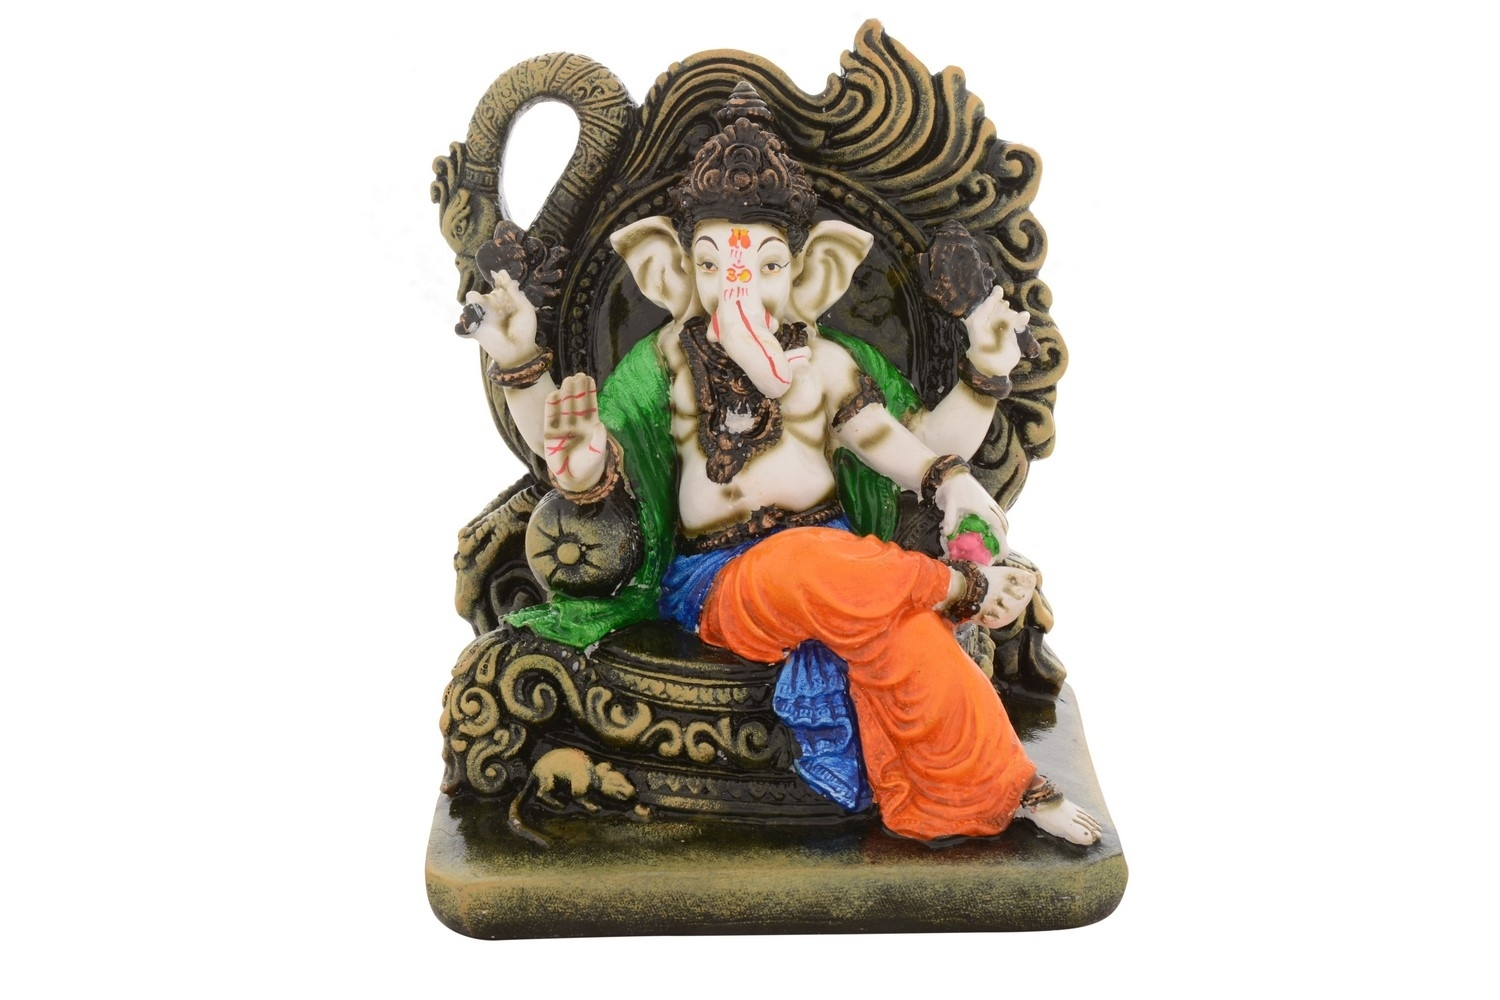 Premium Figurine of Blessing Chaturbhuj Lord Ganesha Indian Home Decor